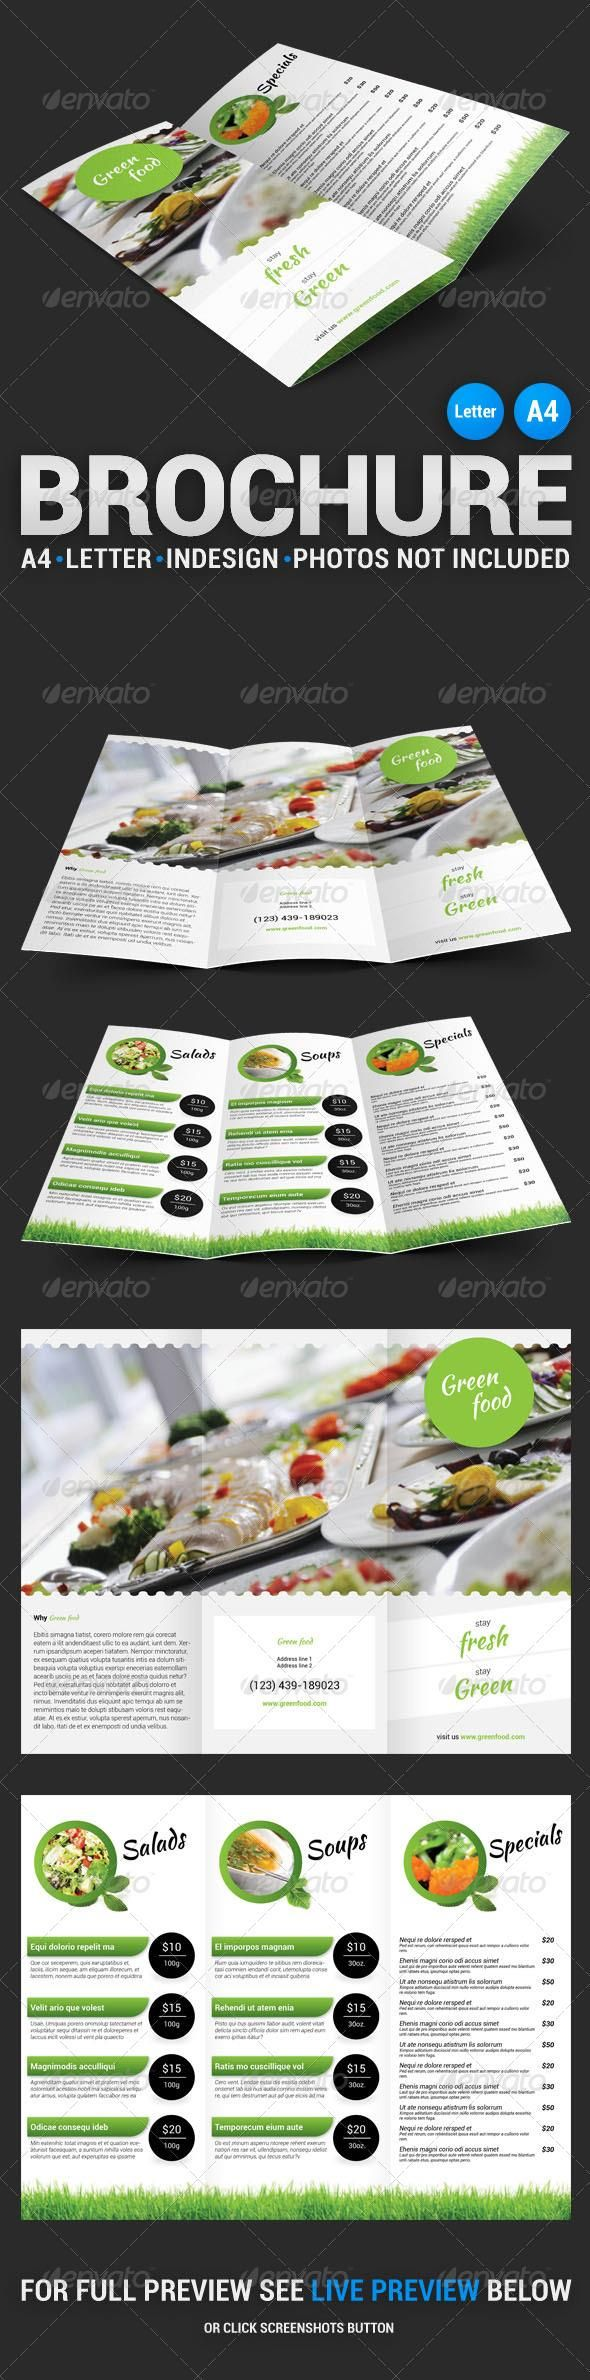 Green Food Tri-Fold Brochure